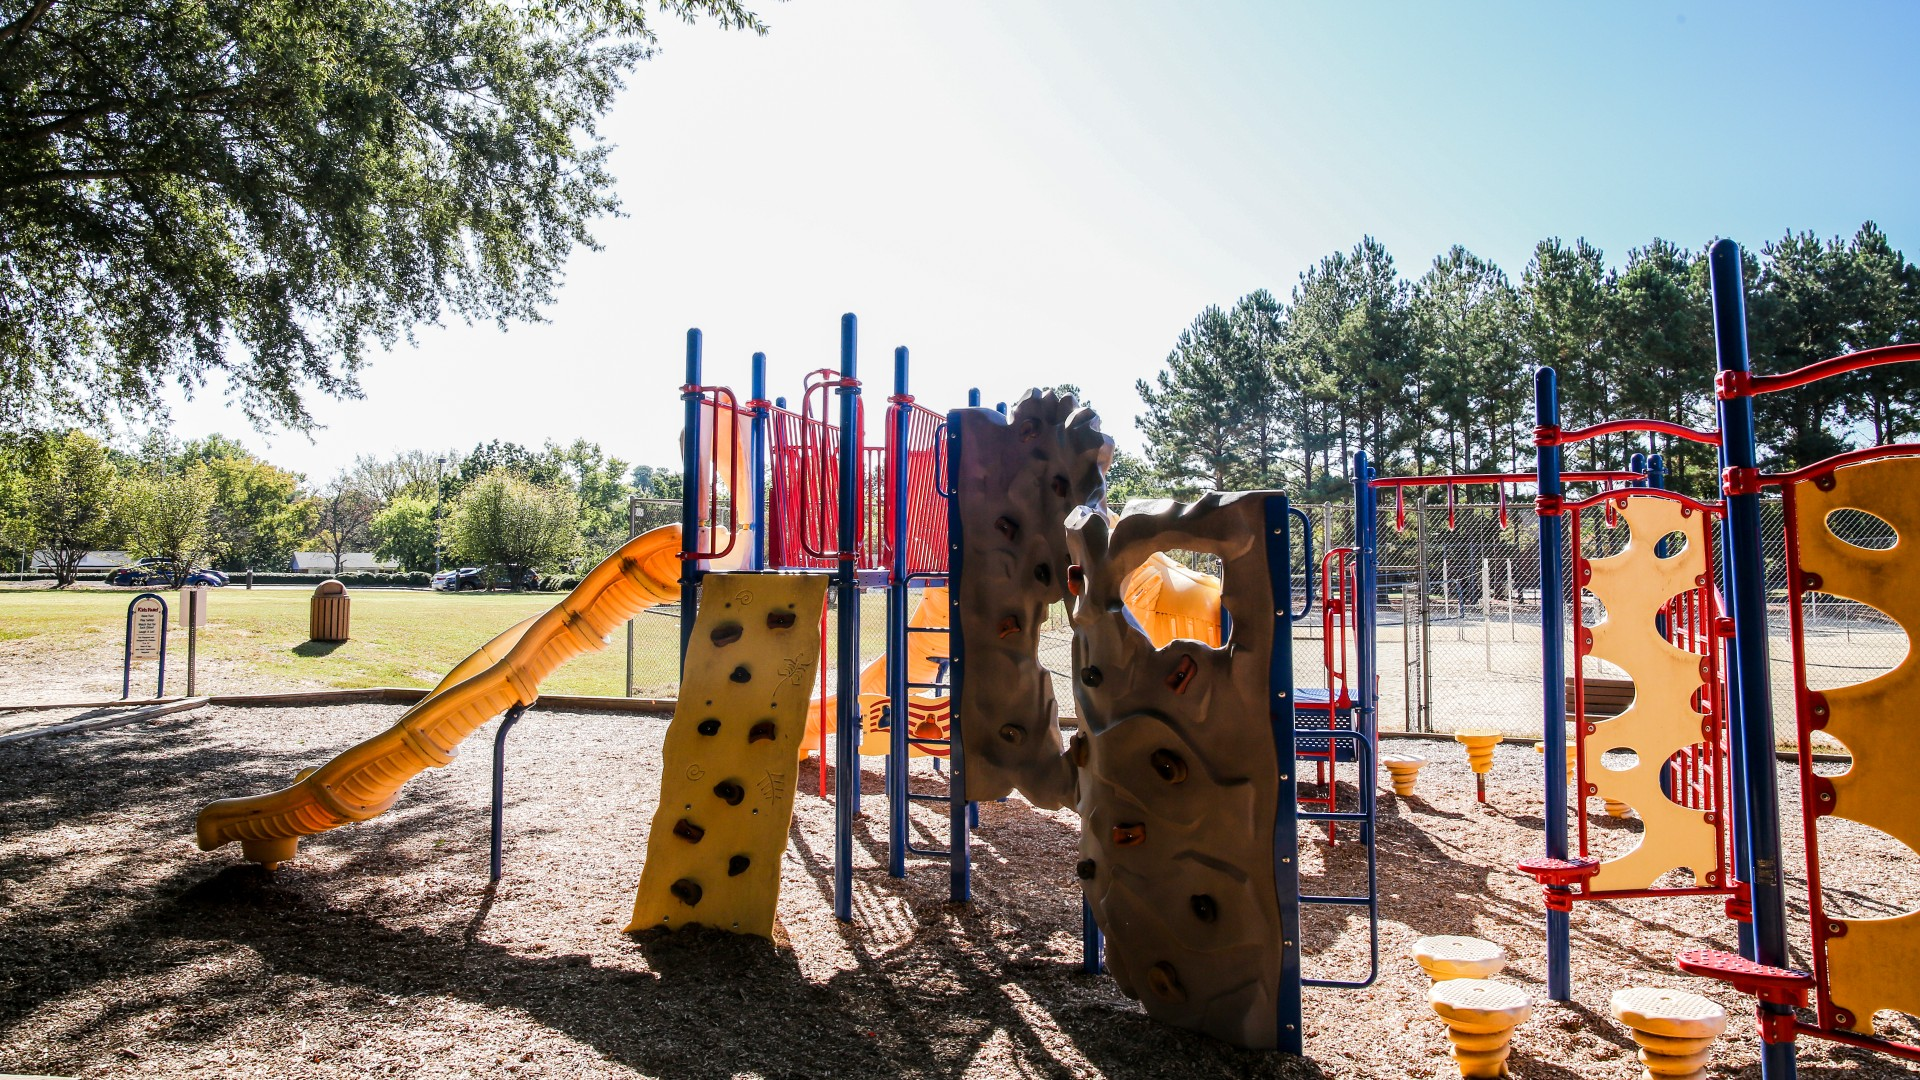 Shot of the playground at Green Road park including slides